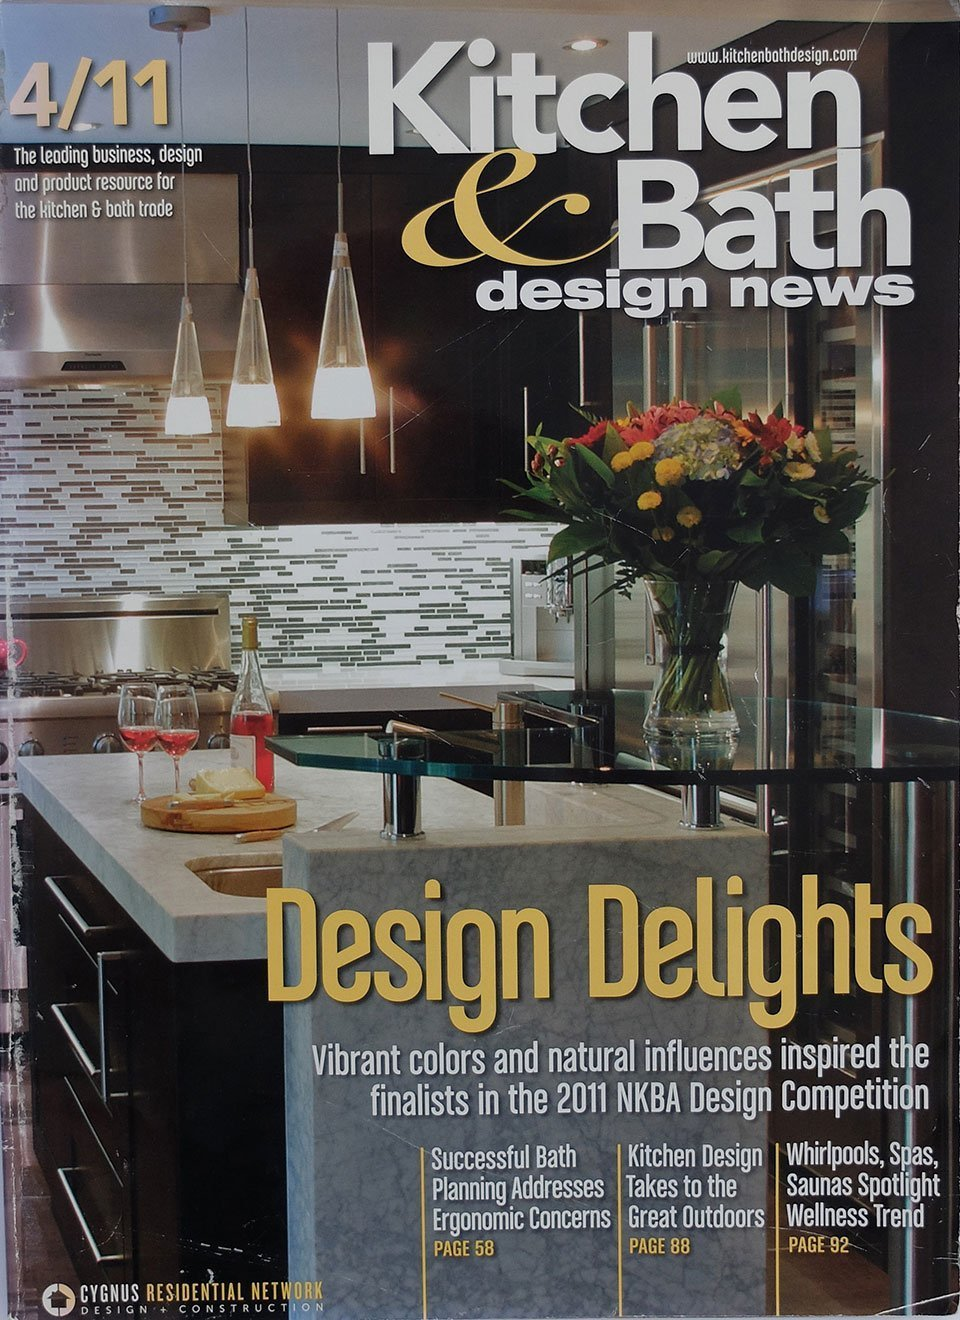 2011 Kitchen & Bath Design News magazine